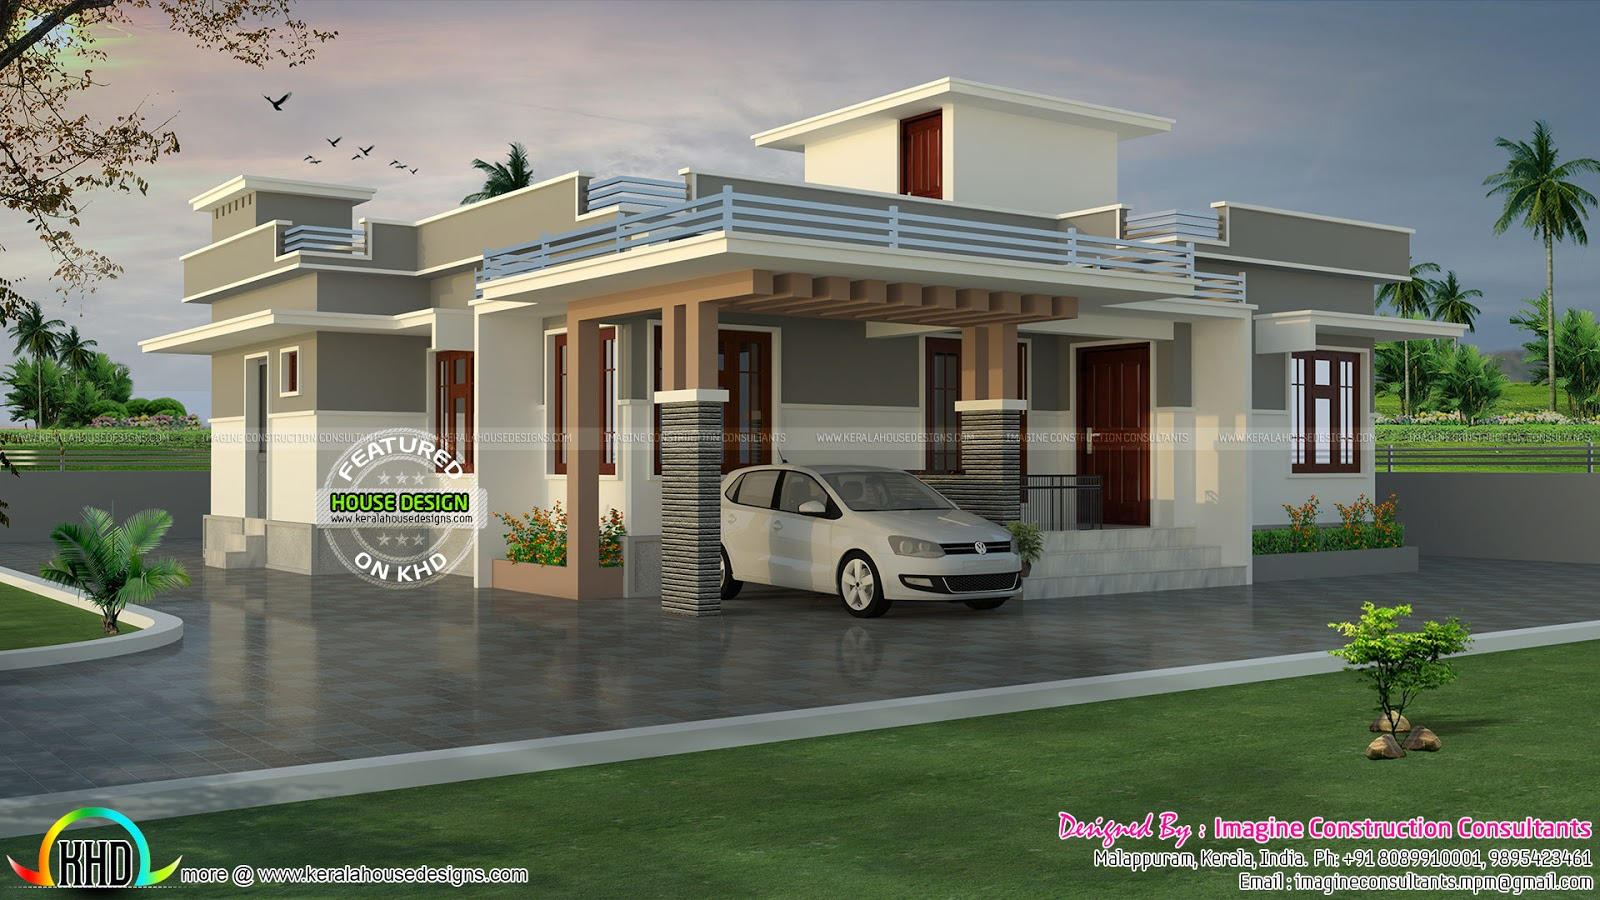 1200 sq ft lakhs cost estimated house plan kerala 1200 sq ft house plan indian design